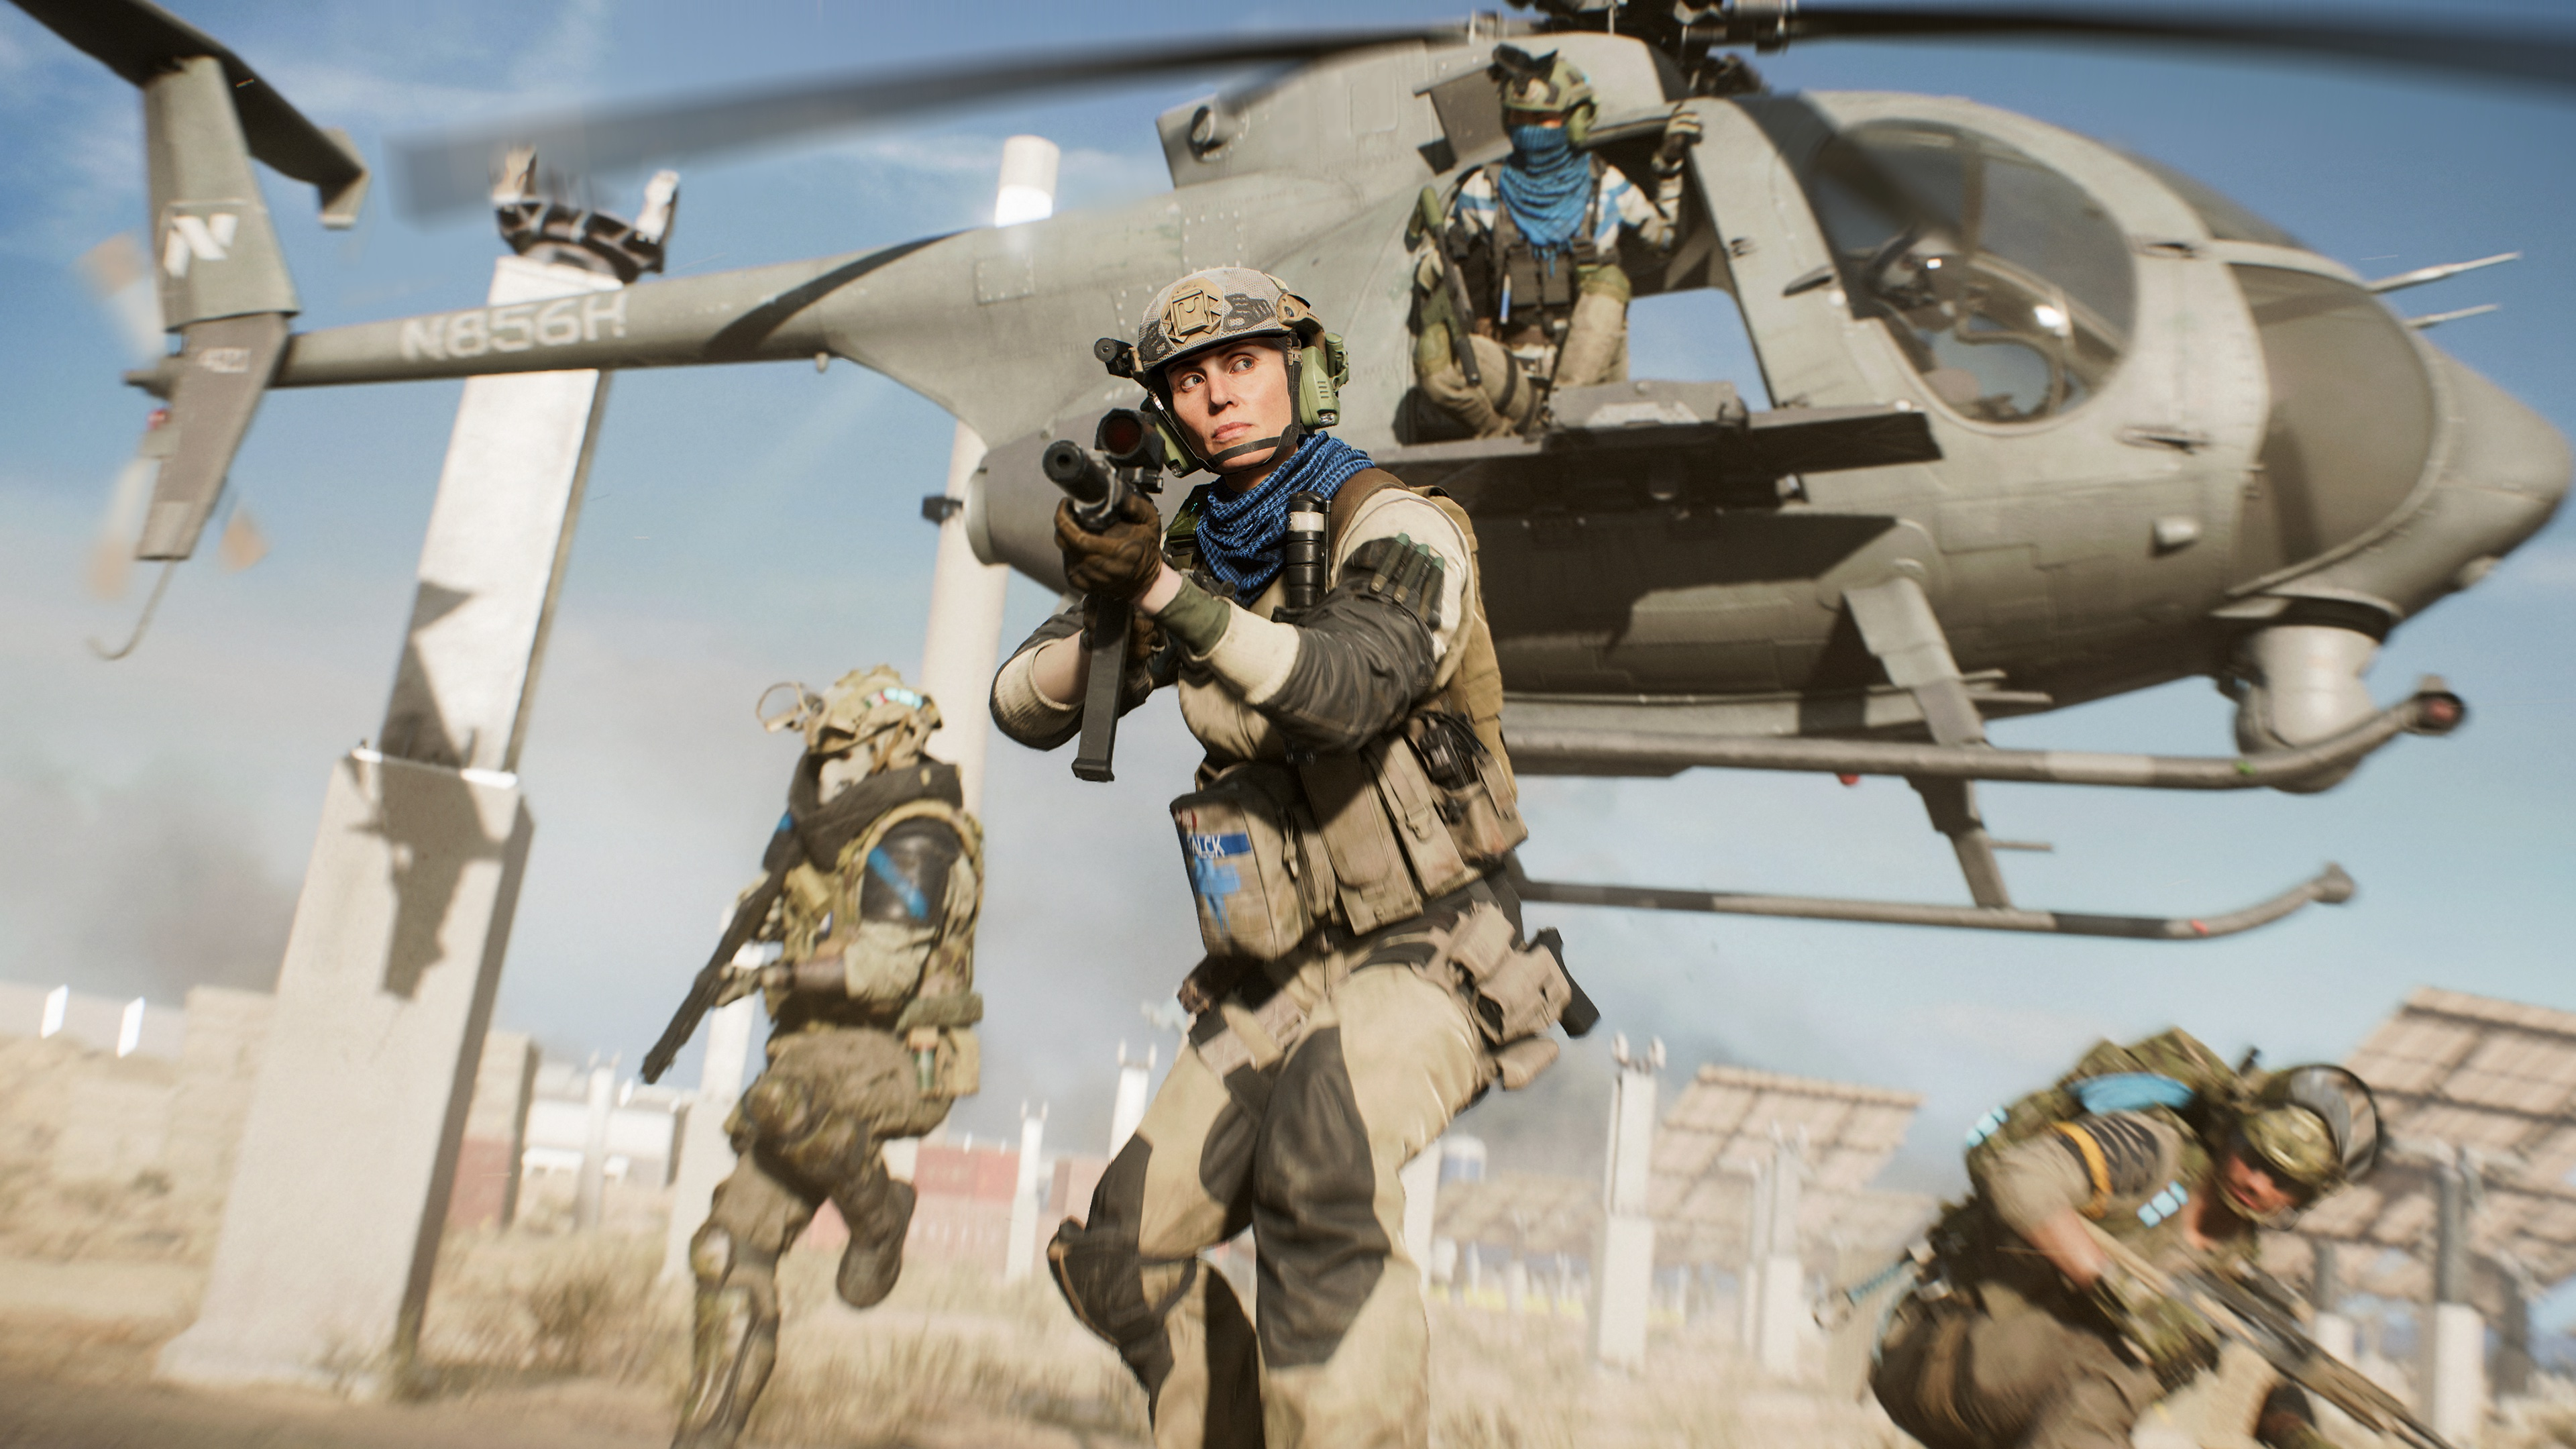 Four soldiers exit a helicopter in a screenshot from Battlefield 2042's Hazard Zone game mode